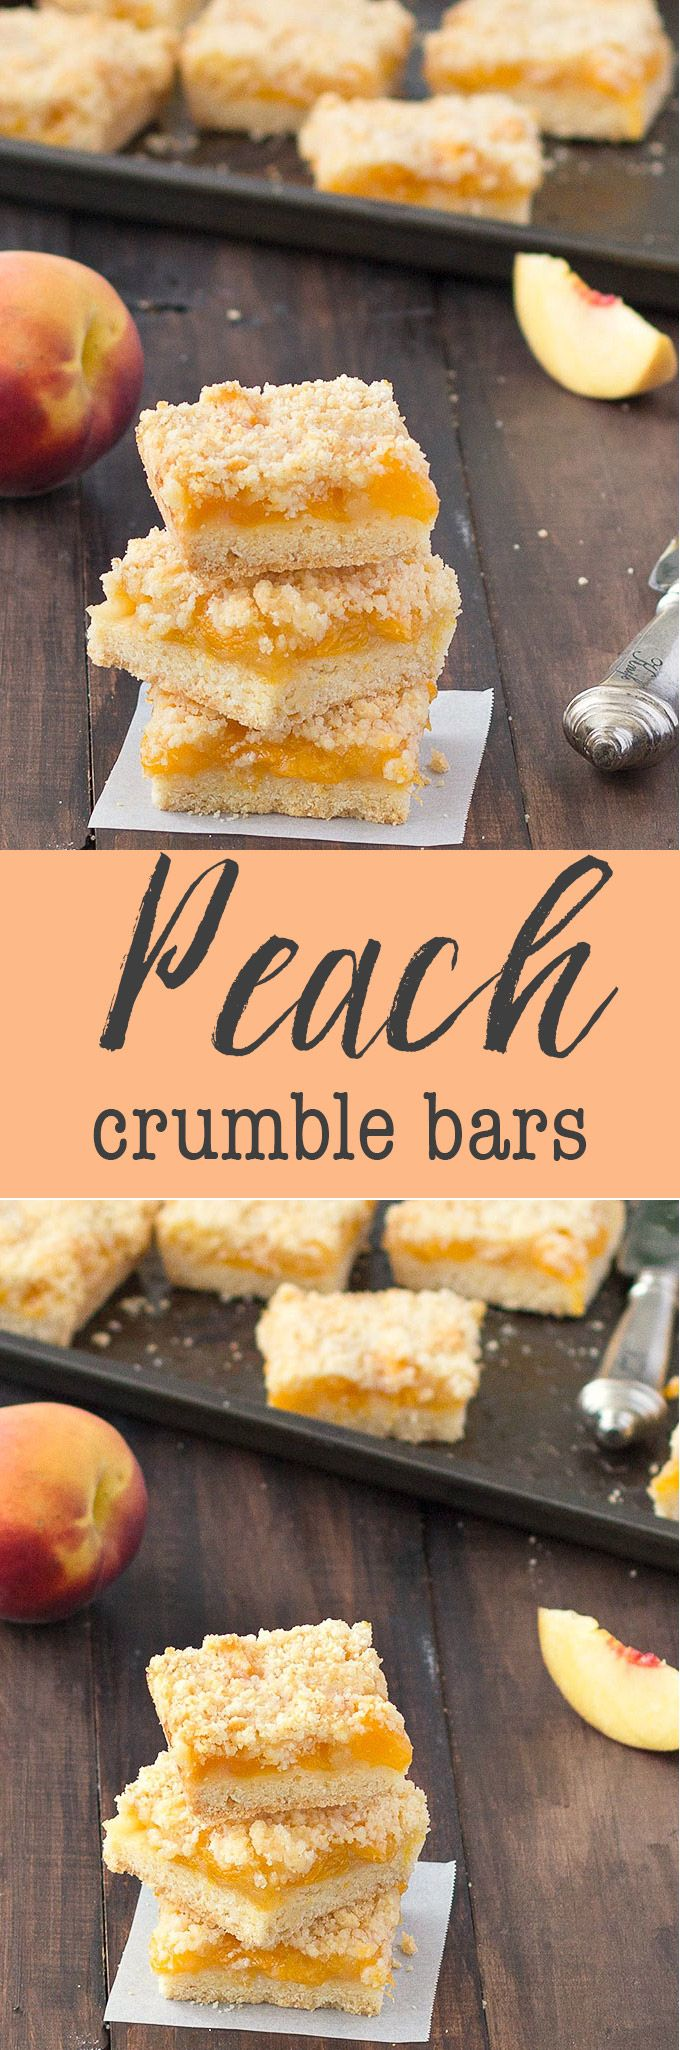 Peach Crumble Bars - the perfect way to use fresh peaches! Easy and delicious! via @easyasapplepie